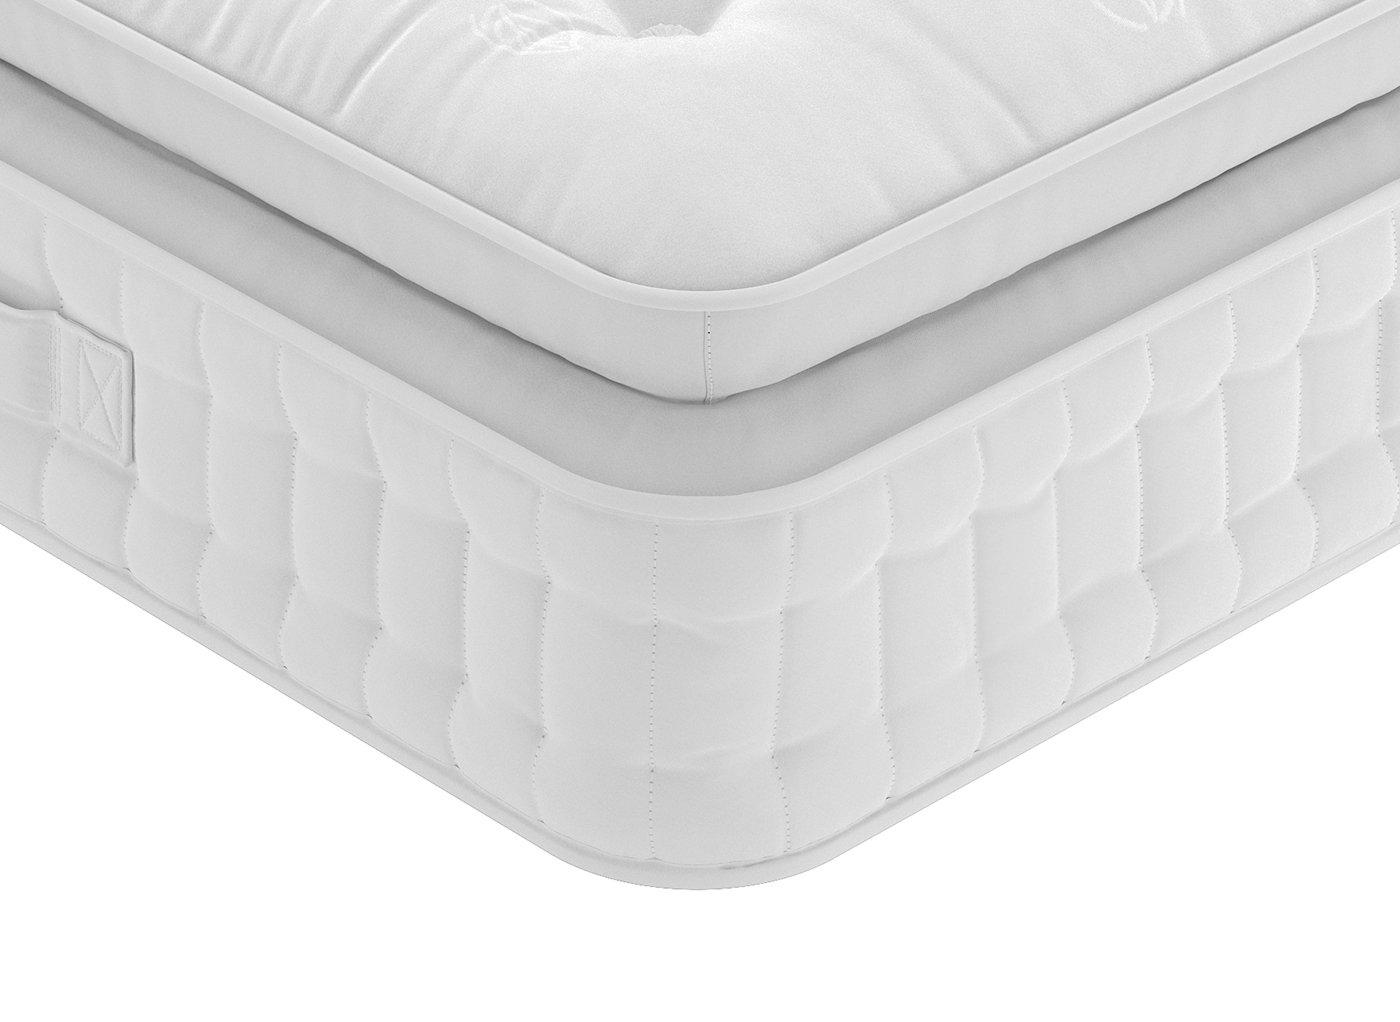 Flaxby nature's finest 9900 d mattress firm 4'6 double